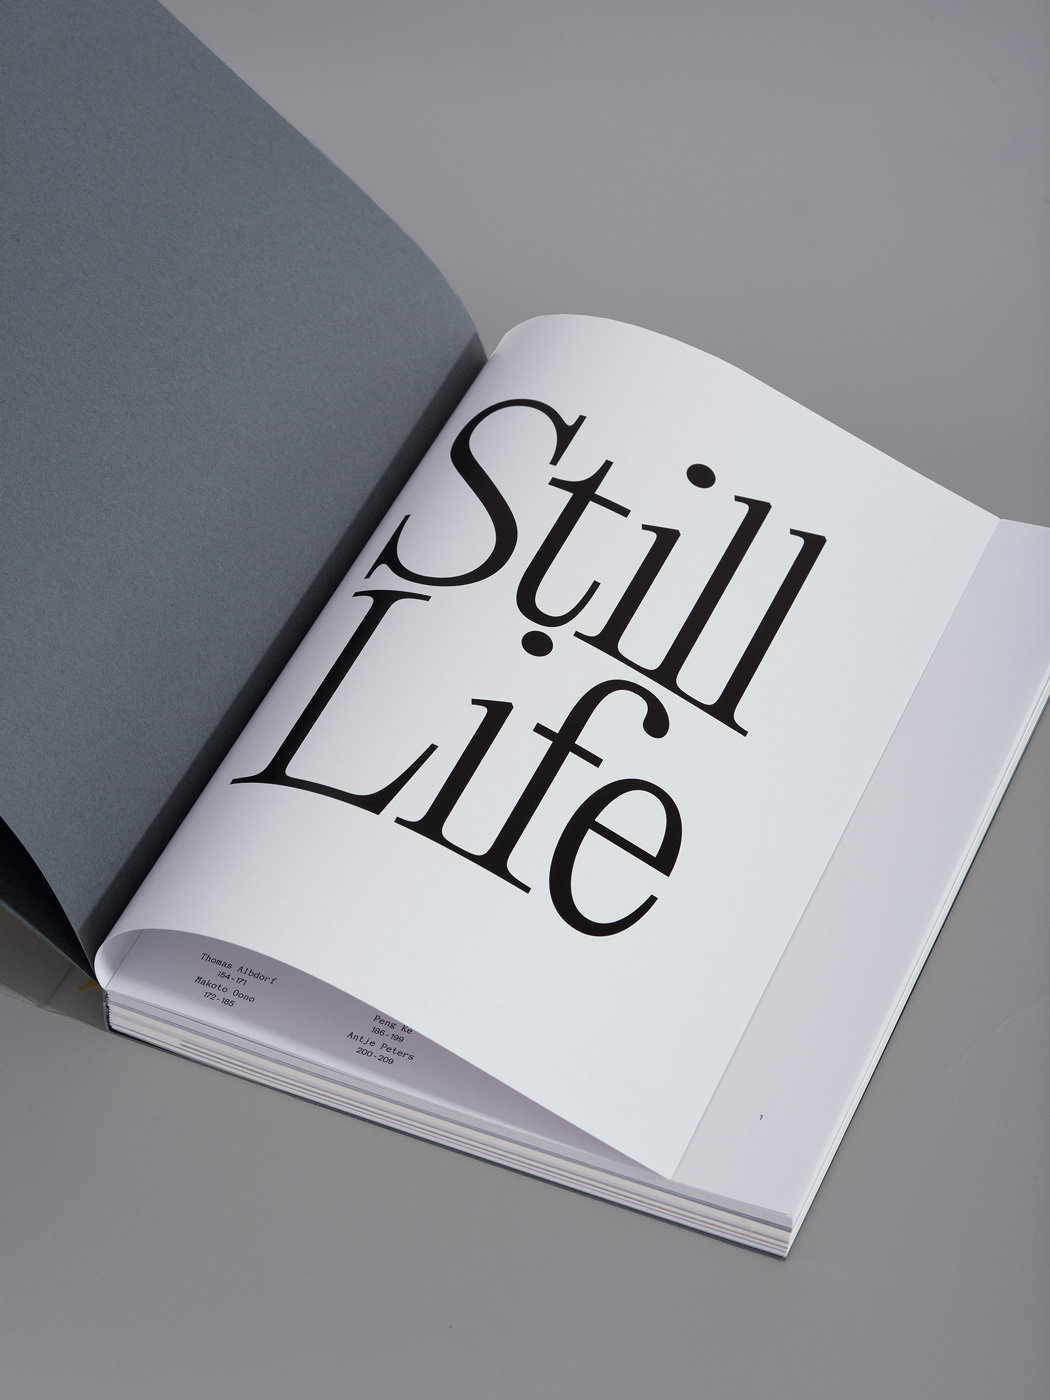 01 collide24 samepaper - The book Still Life, published by Same Paper and designed by Han Gao, invites thirteen photographers to reflect on the medium in times of the pandemic